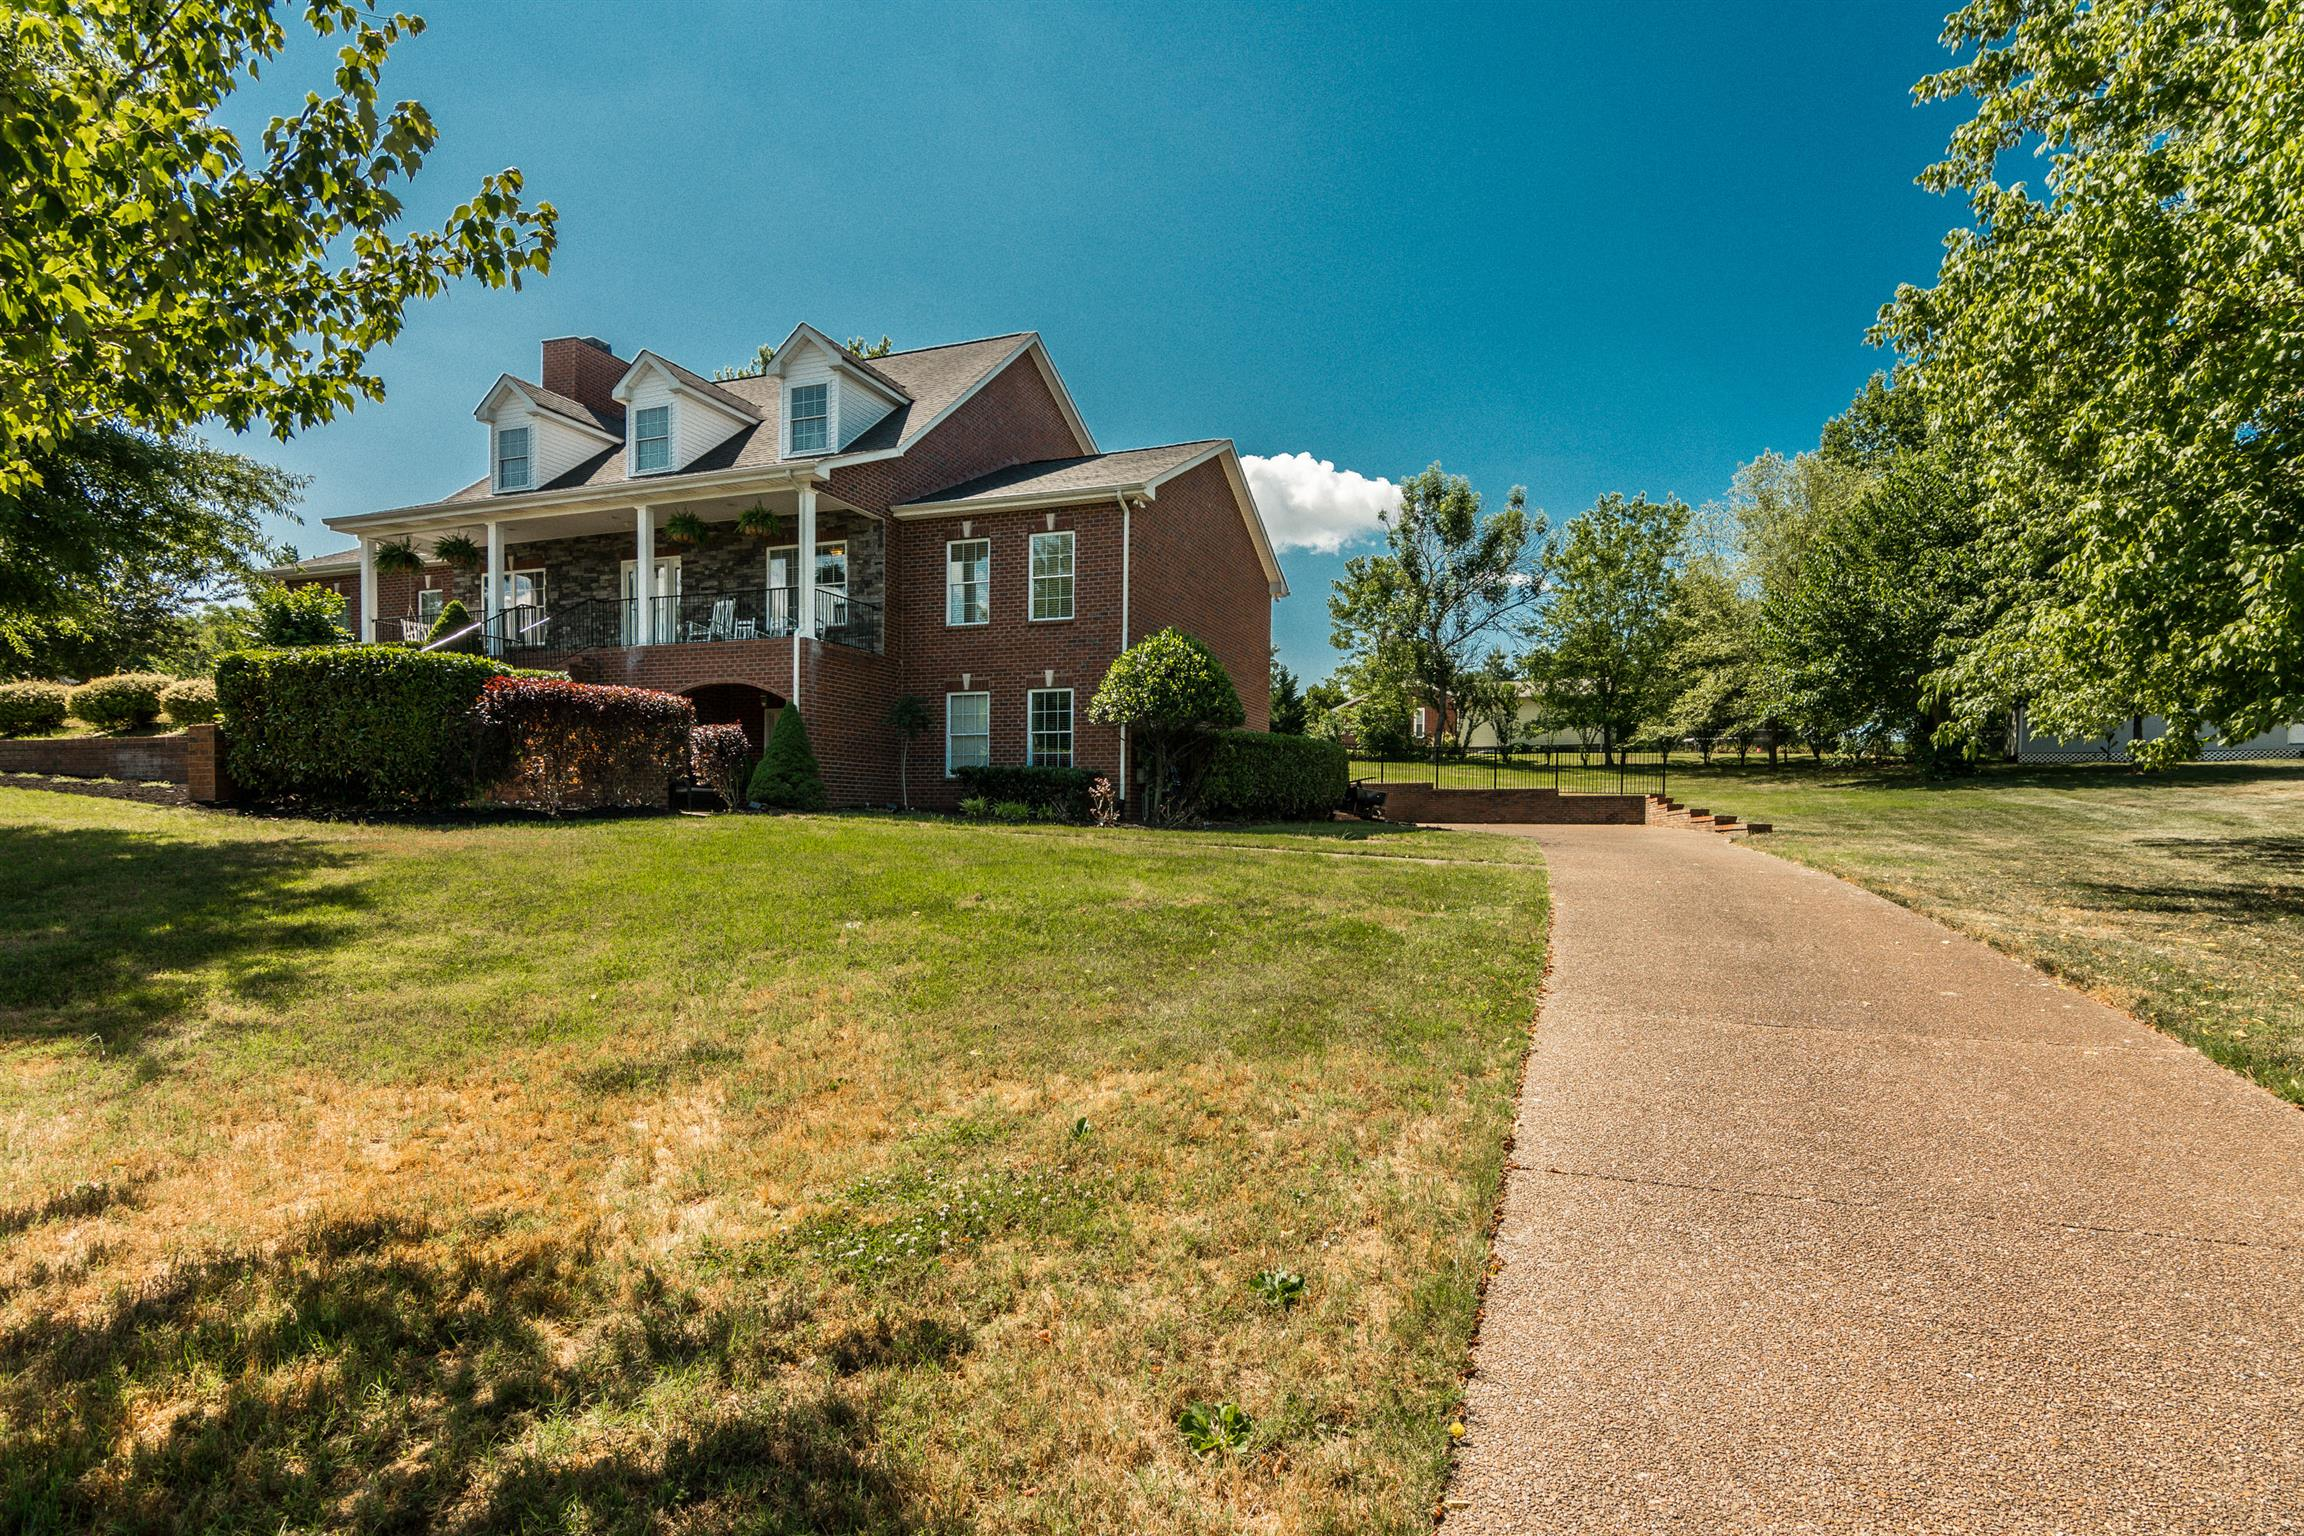 1106 Anderson Rd, Hendersonville, TN 37075 - Hendersonville, TN real estate listing